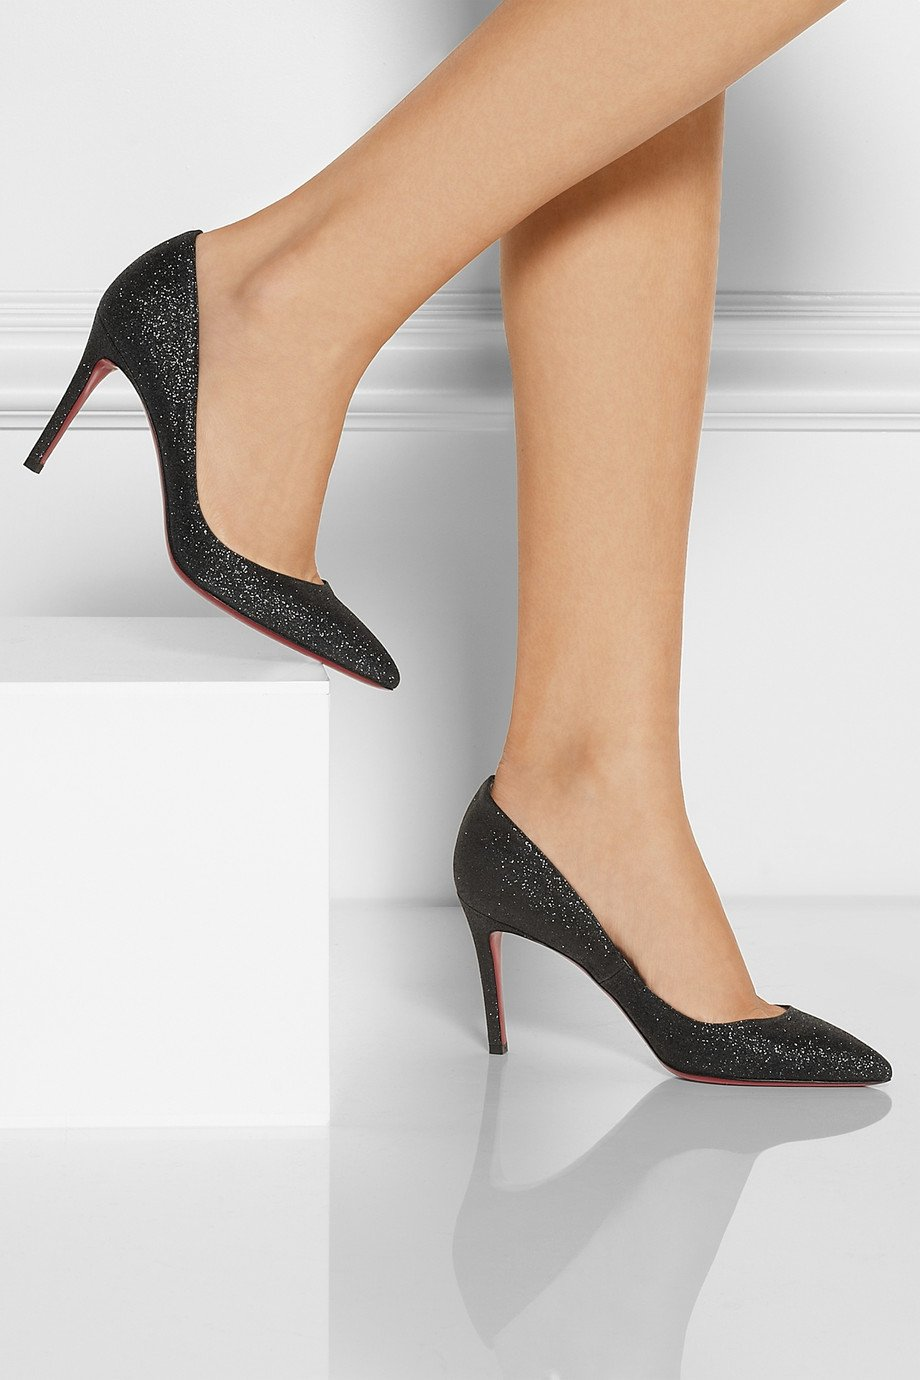 7efb422bcba uk pigalle follies 85 leather pumps christian louboutin mytheresa ef50c  ad5dd  official lyst christian louboutin the pigalle 85 glittered pumps in  black ...